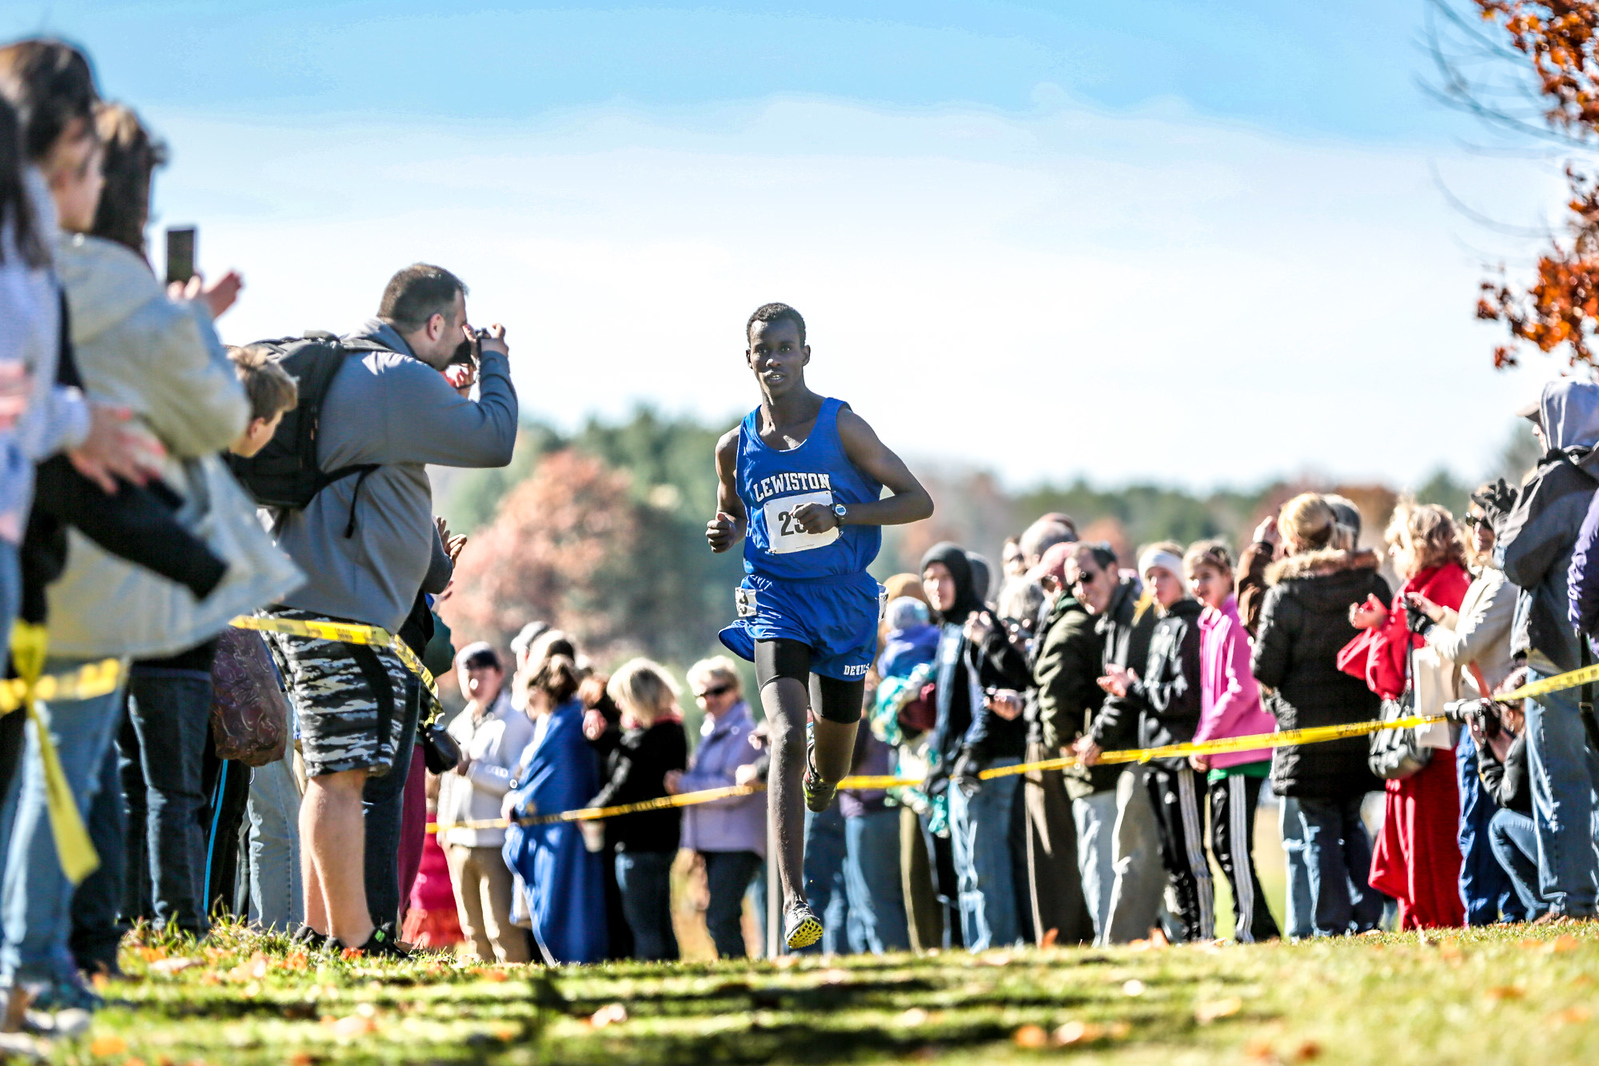 """Floating: Lewiston's Osman Doorow cruises on the lead just after the two-mile point of yesterday's state championship cross country meet. Doorow won, ending the year undefeated.  All photos:  <a href=""""http://www.brewstersphotos.com"""">http://www.brewstersphotos.com</a>"""